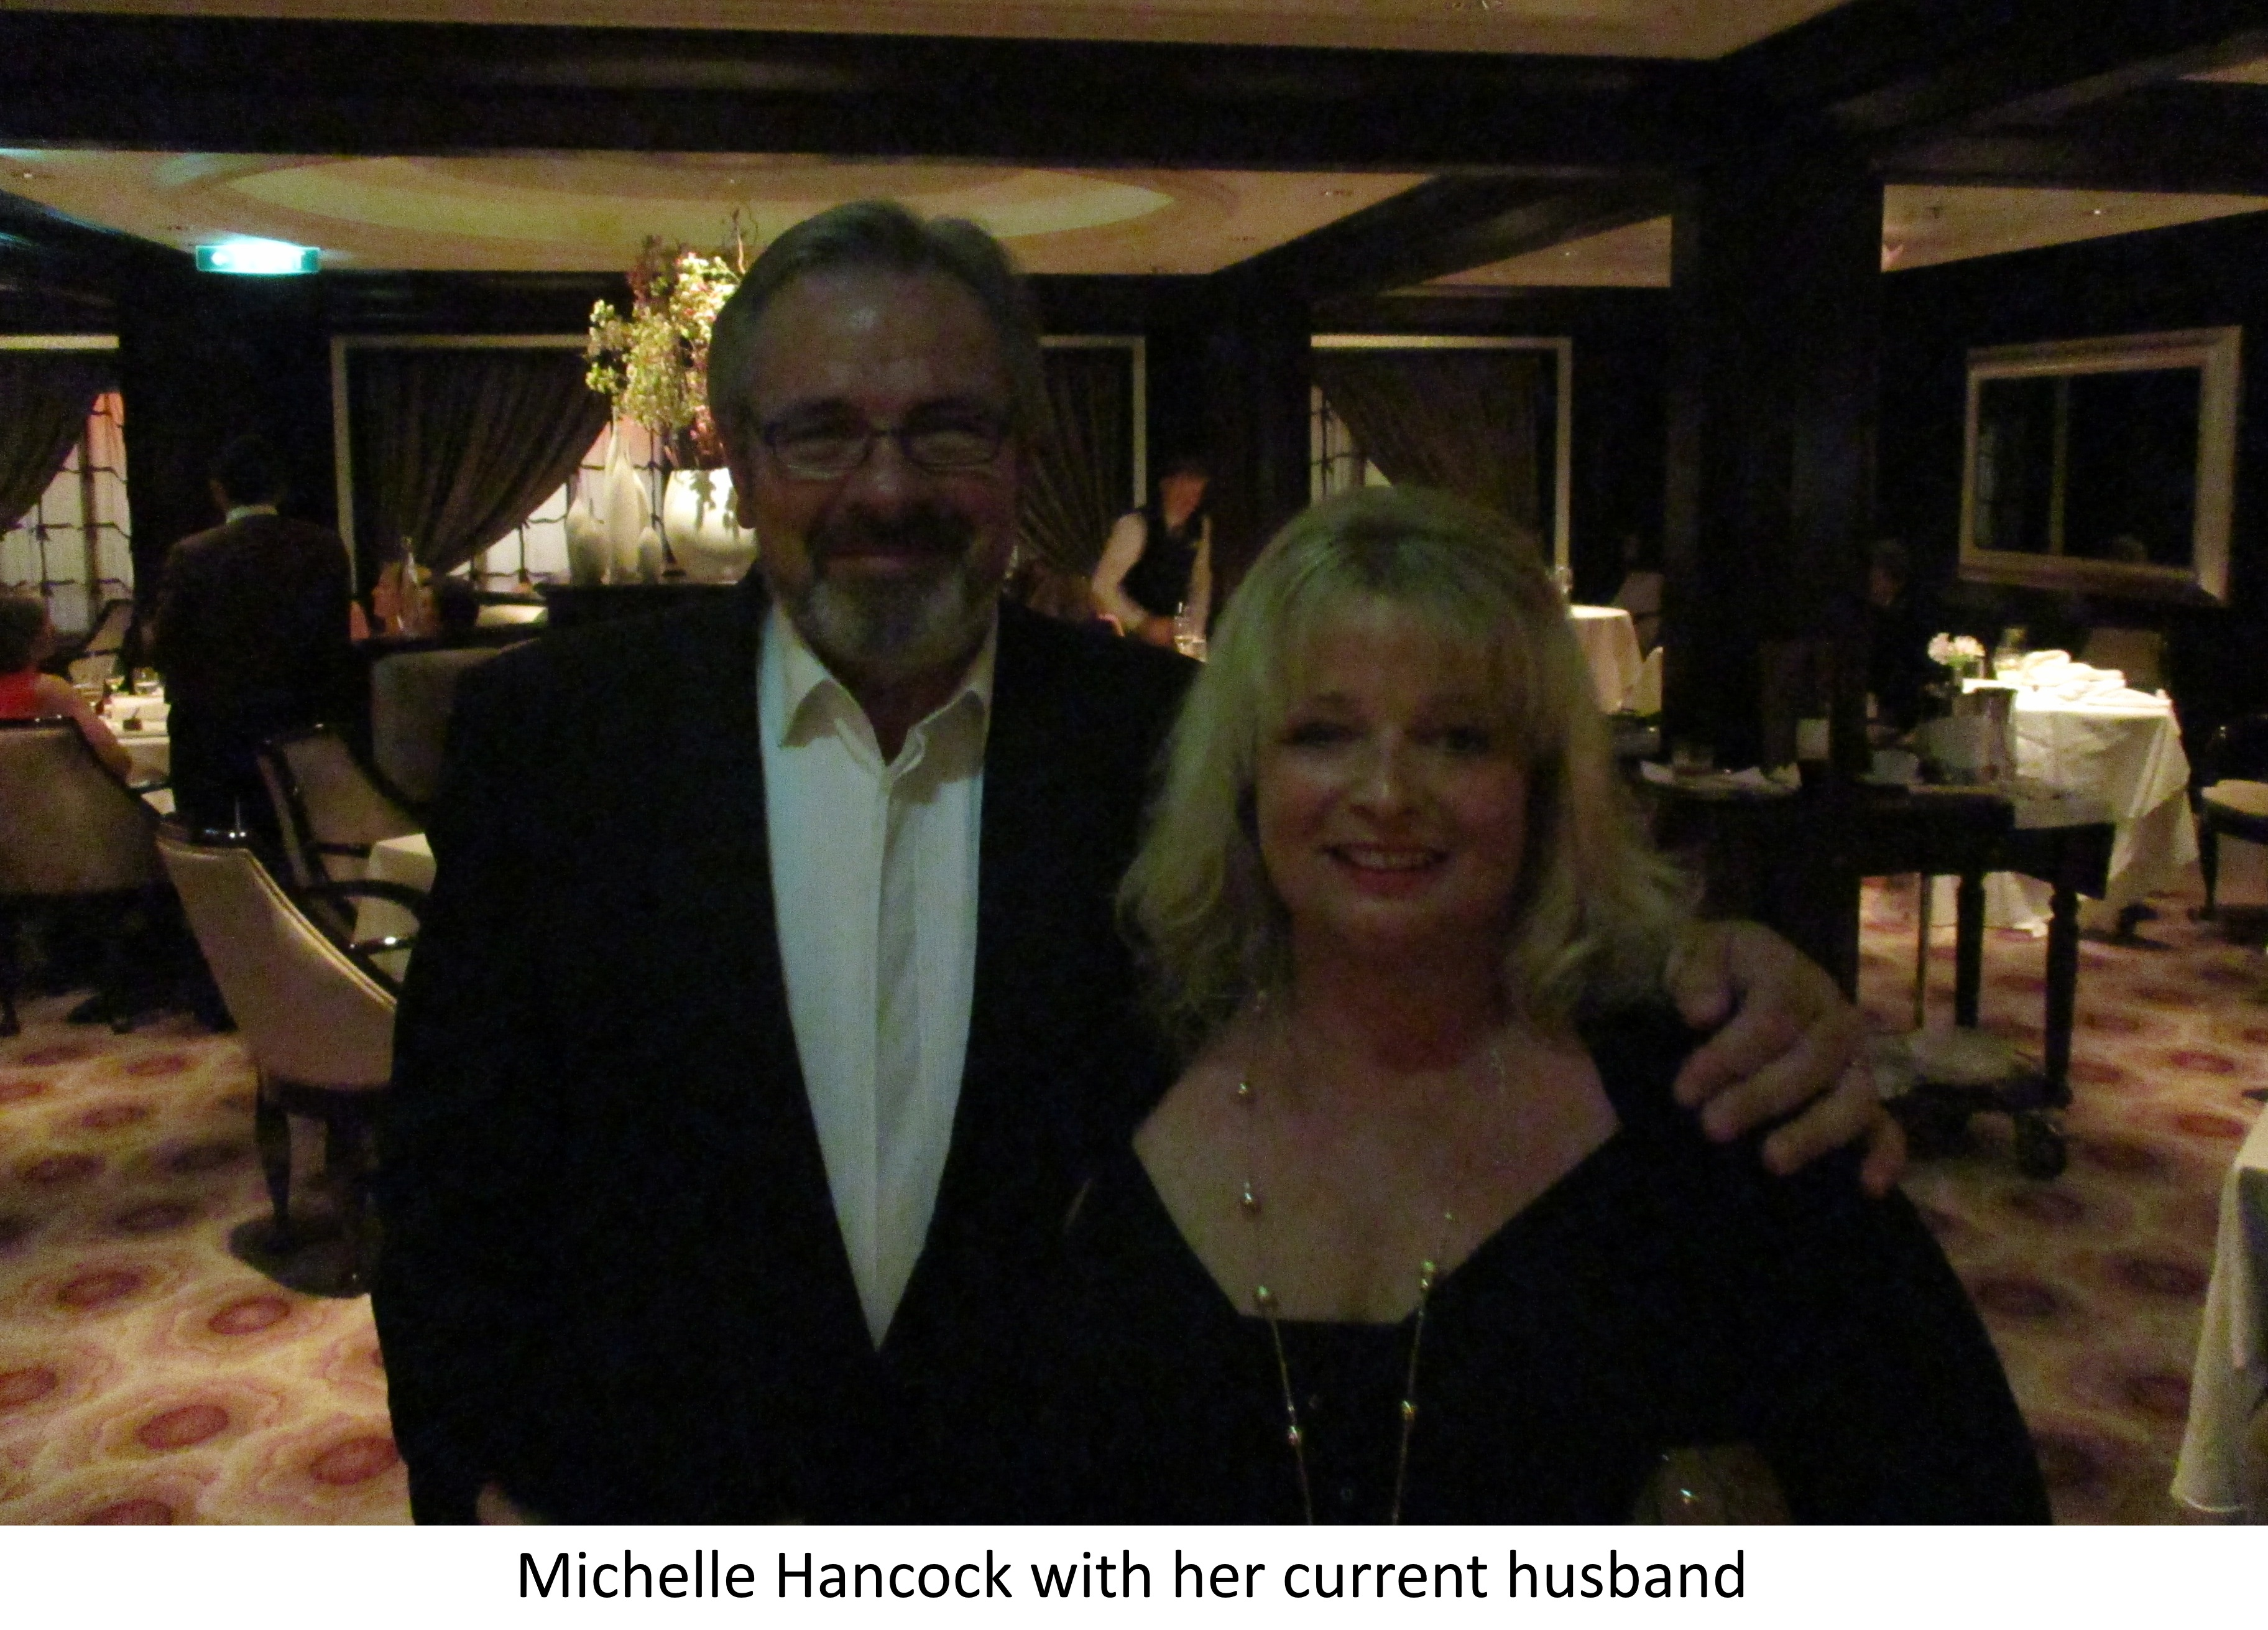 Michelle Hancock with her current husband